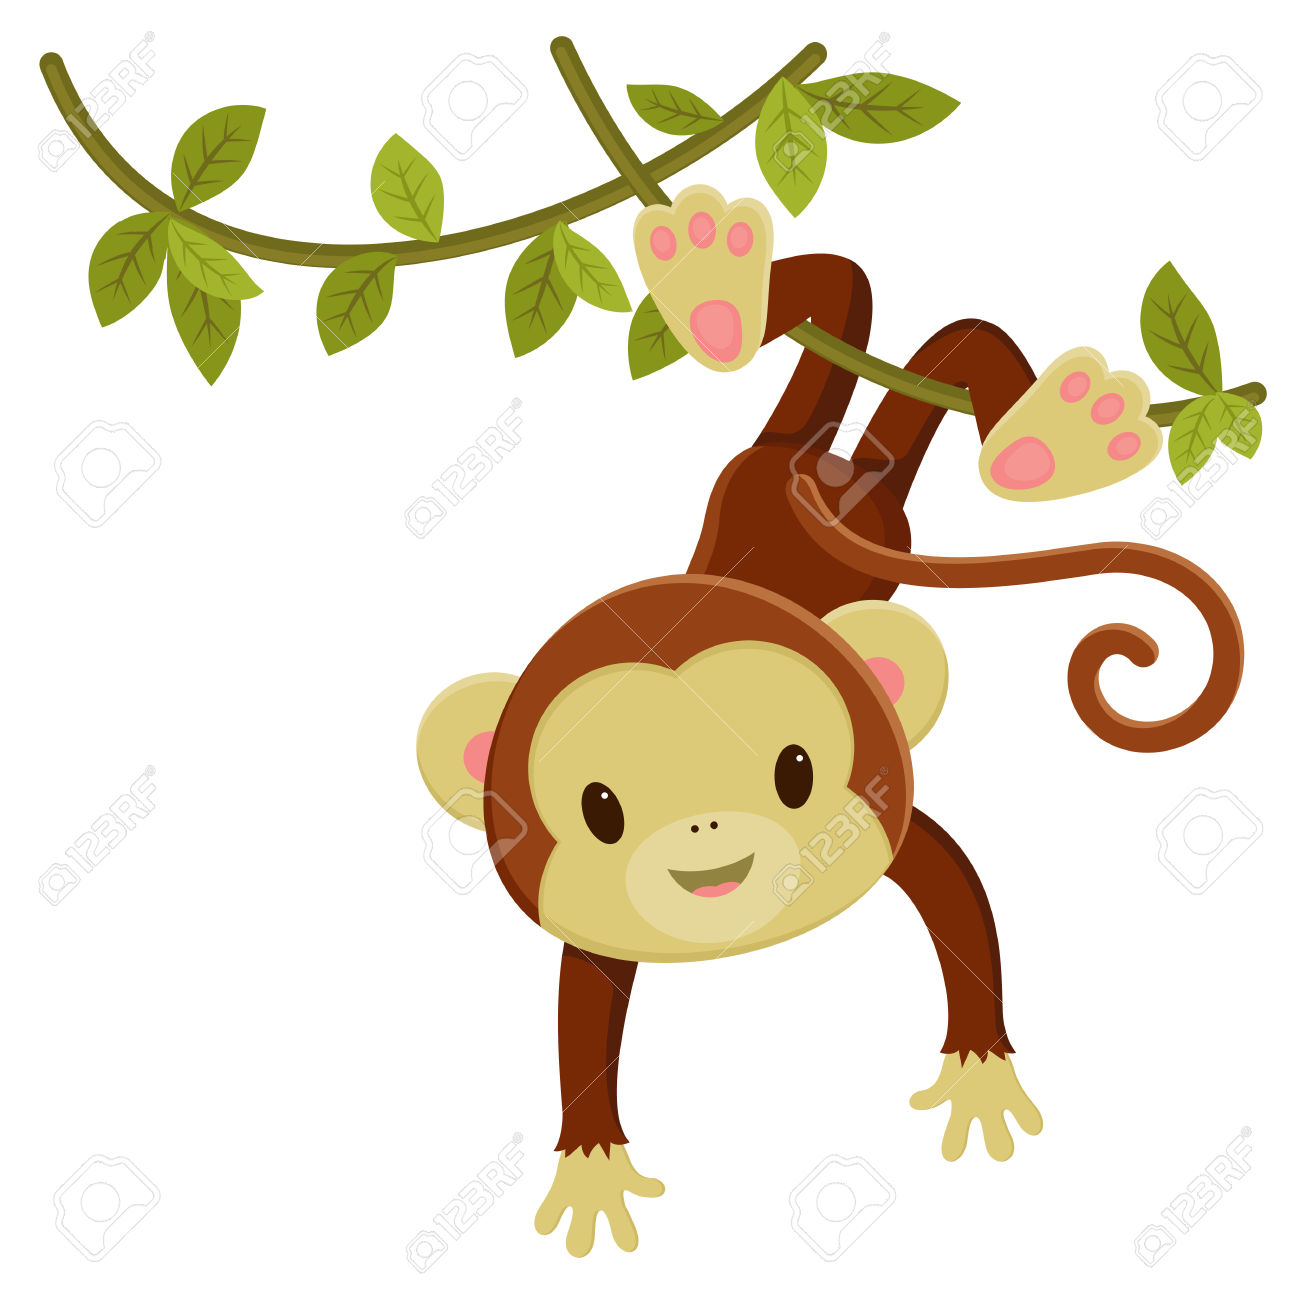 Animated baby monkey clipart clip royalty free stock Cartoon Monkey Clipart | Free download best Cartoon Monkey Clipart ... clip royalty free stock